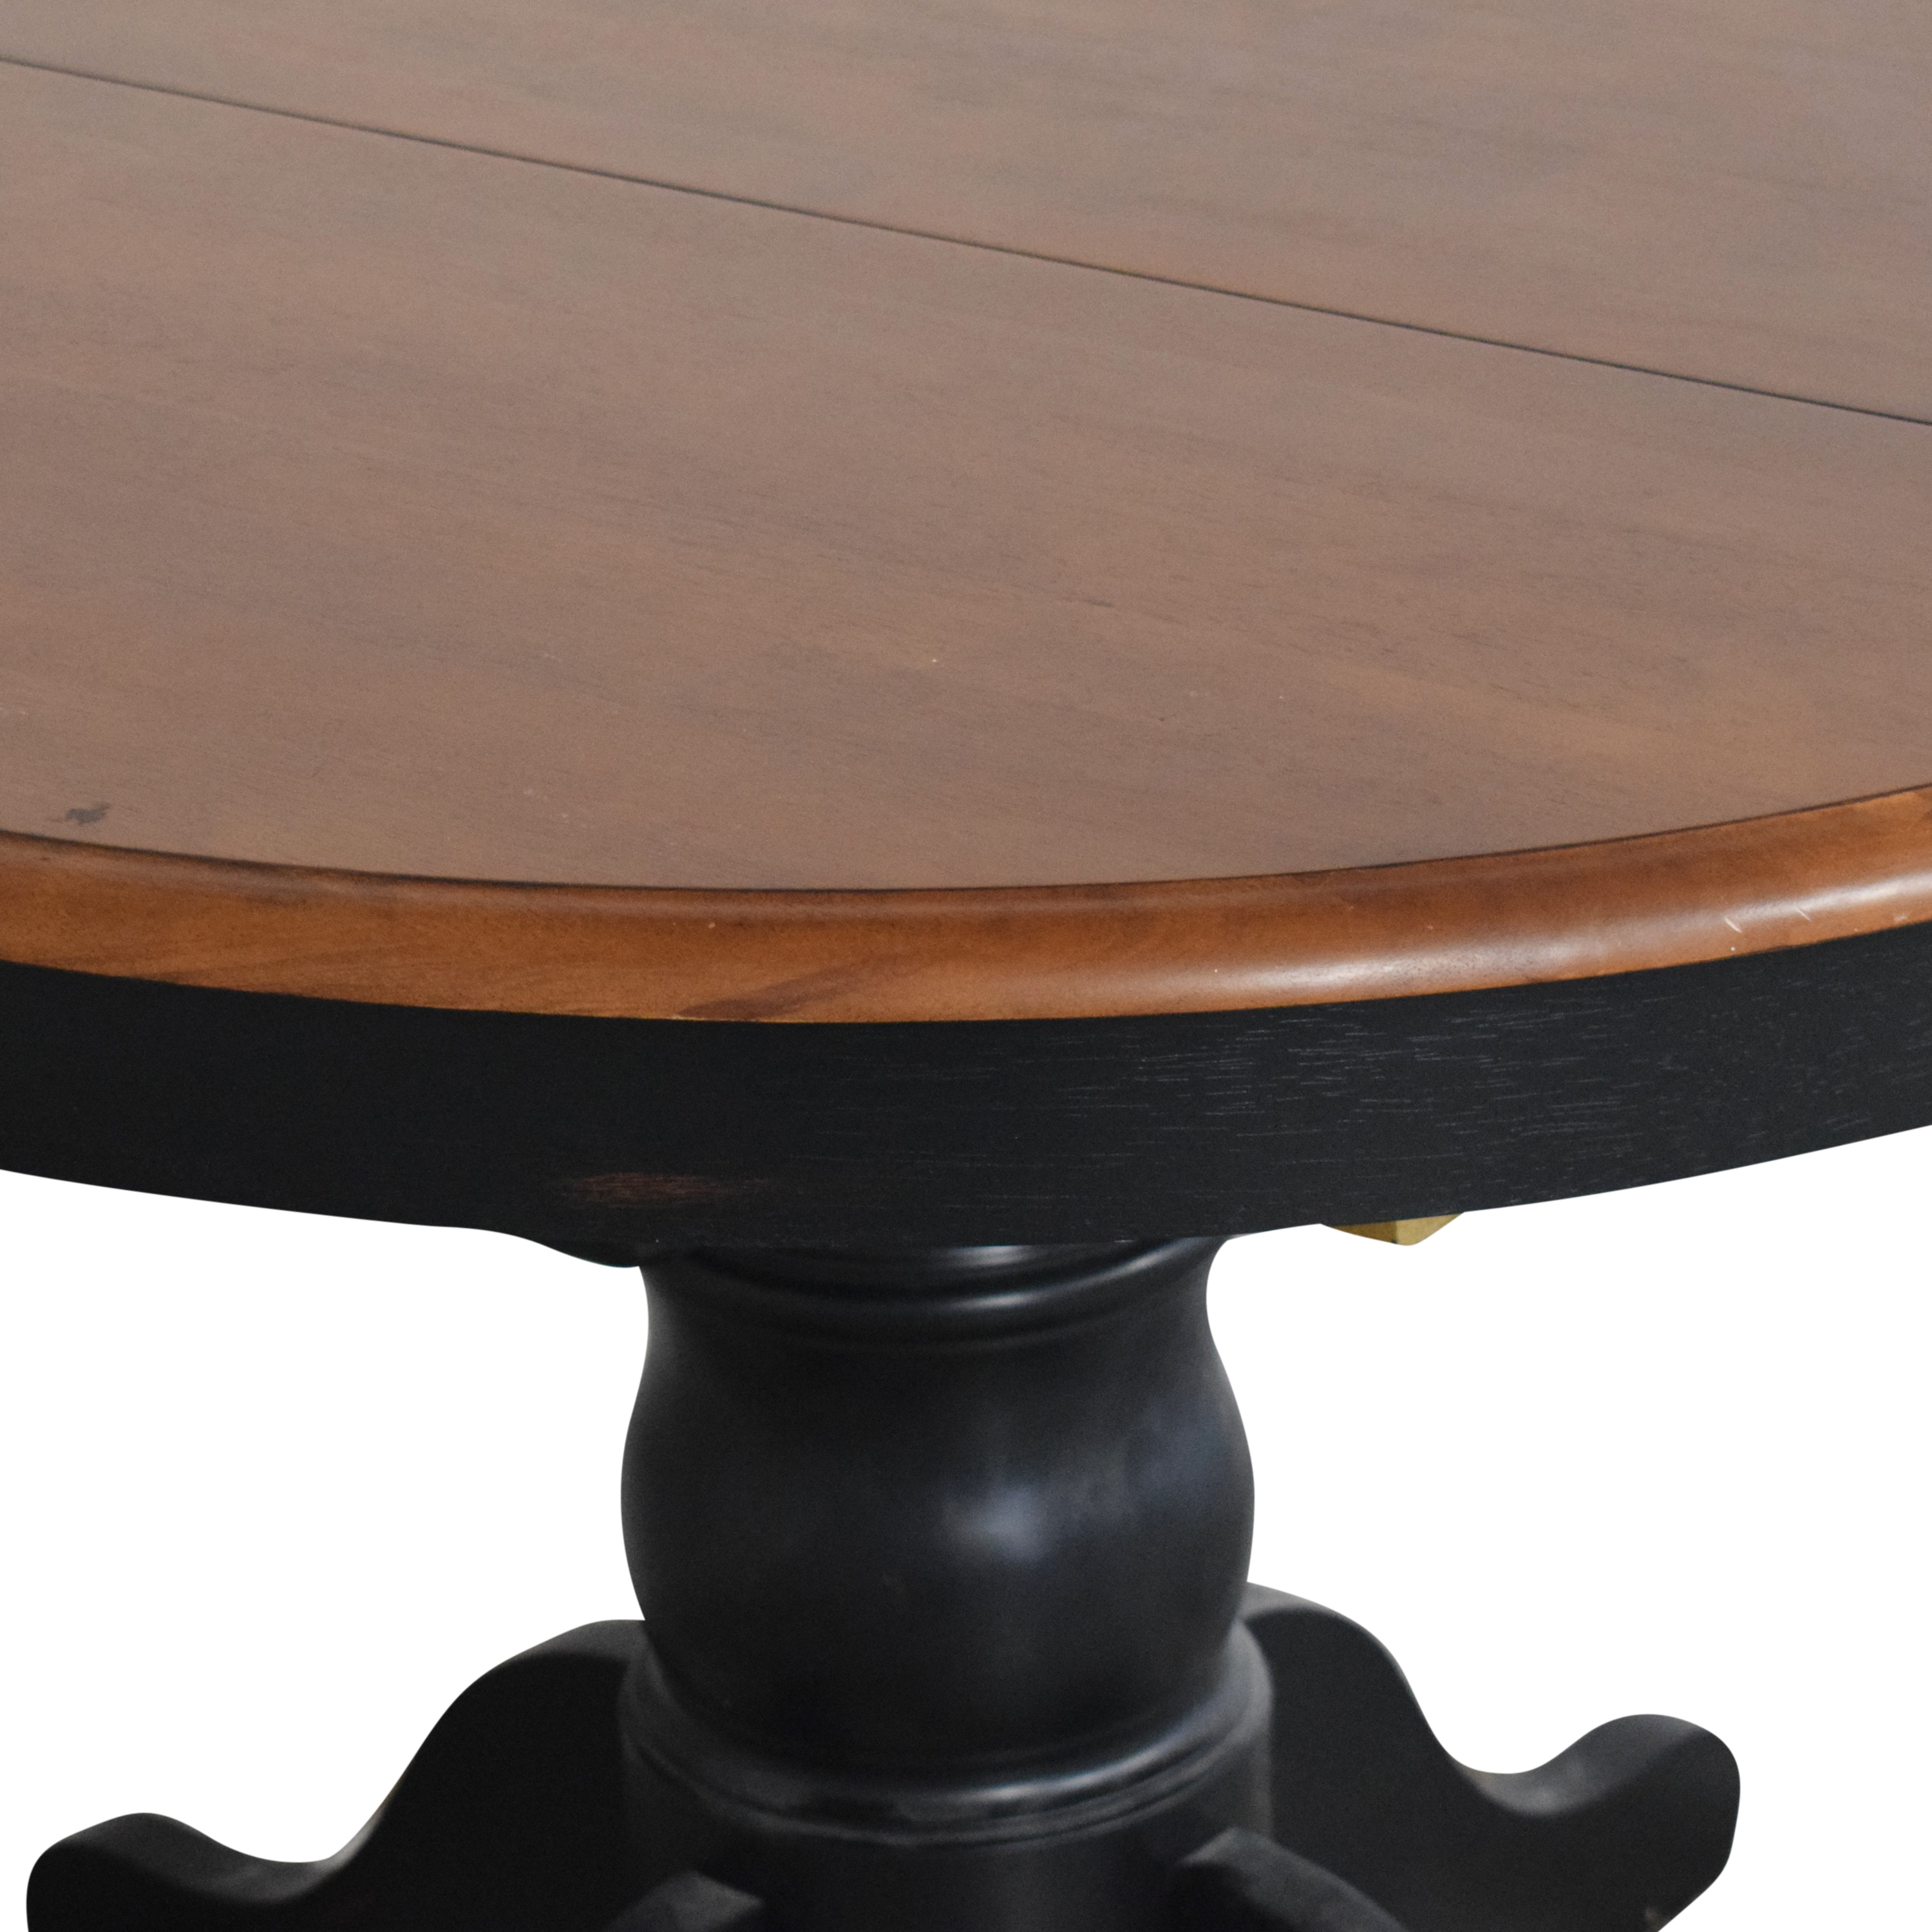 Bloomingdale's Bloomingdale's Round Extendable Dining Table on sale